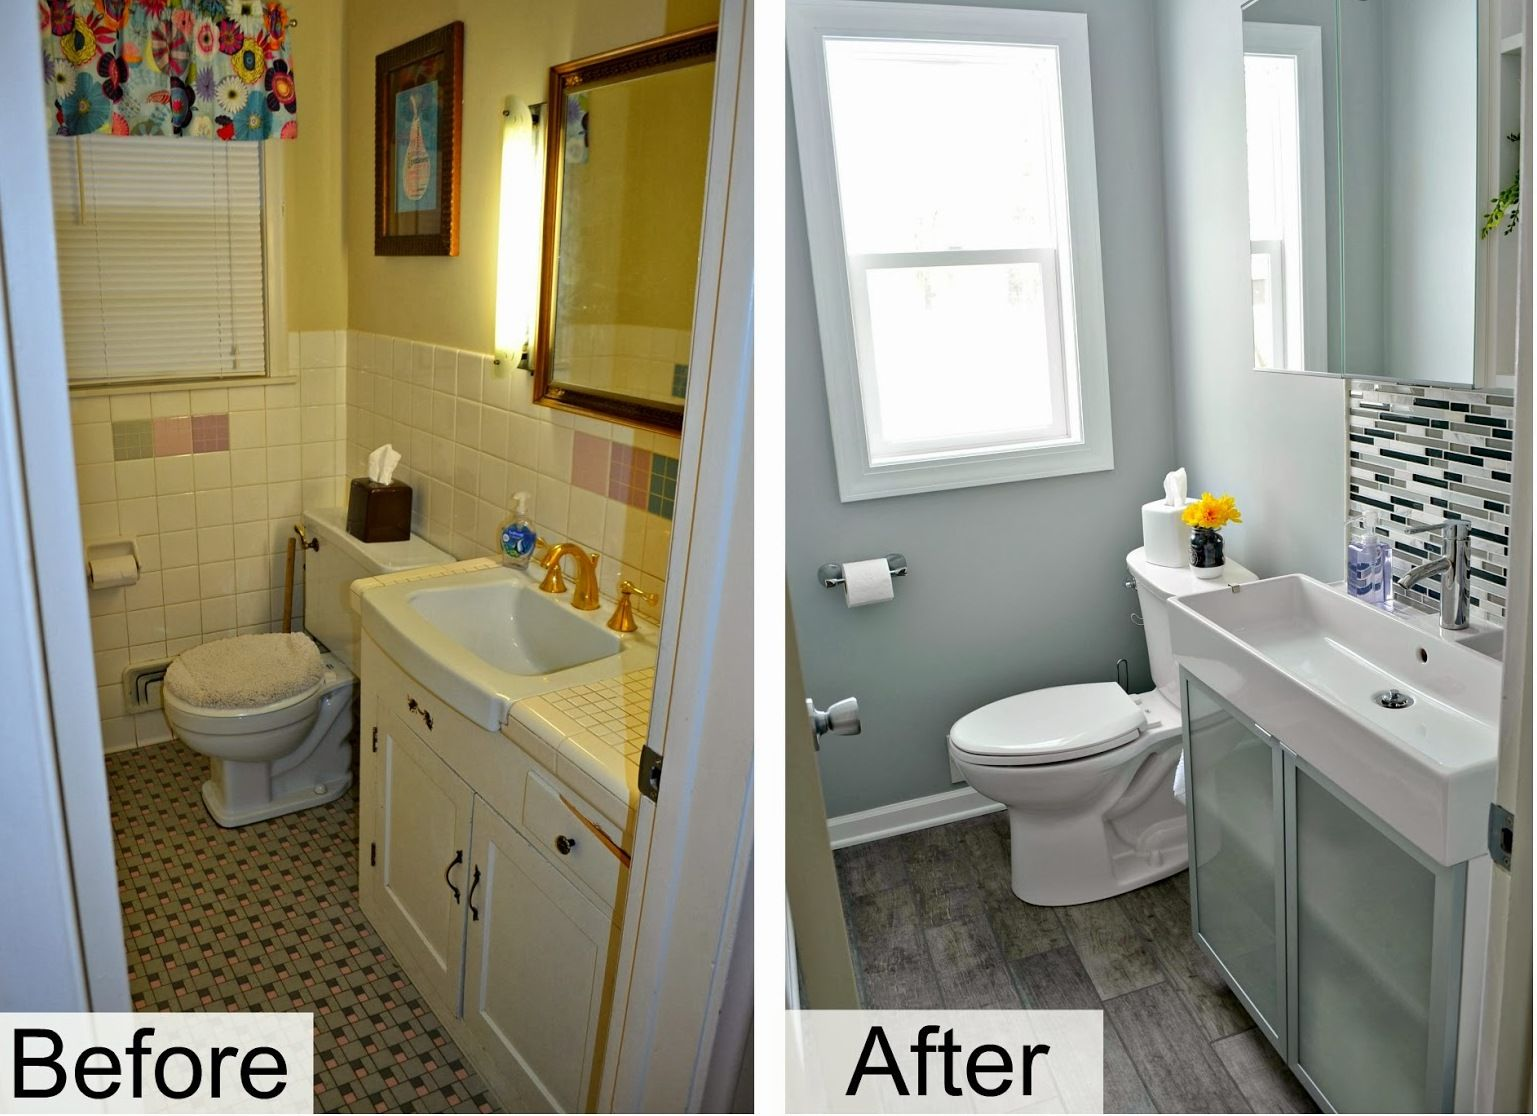 wallpaper small bathroom makeover before and after of pics mobile high quality iud never turn this down you donut need to have so much a